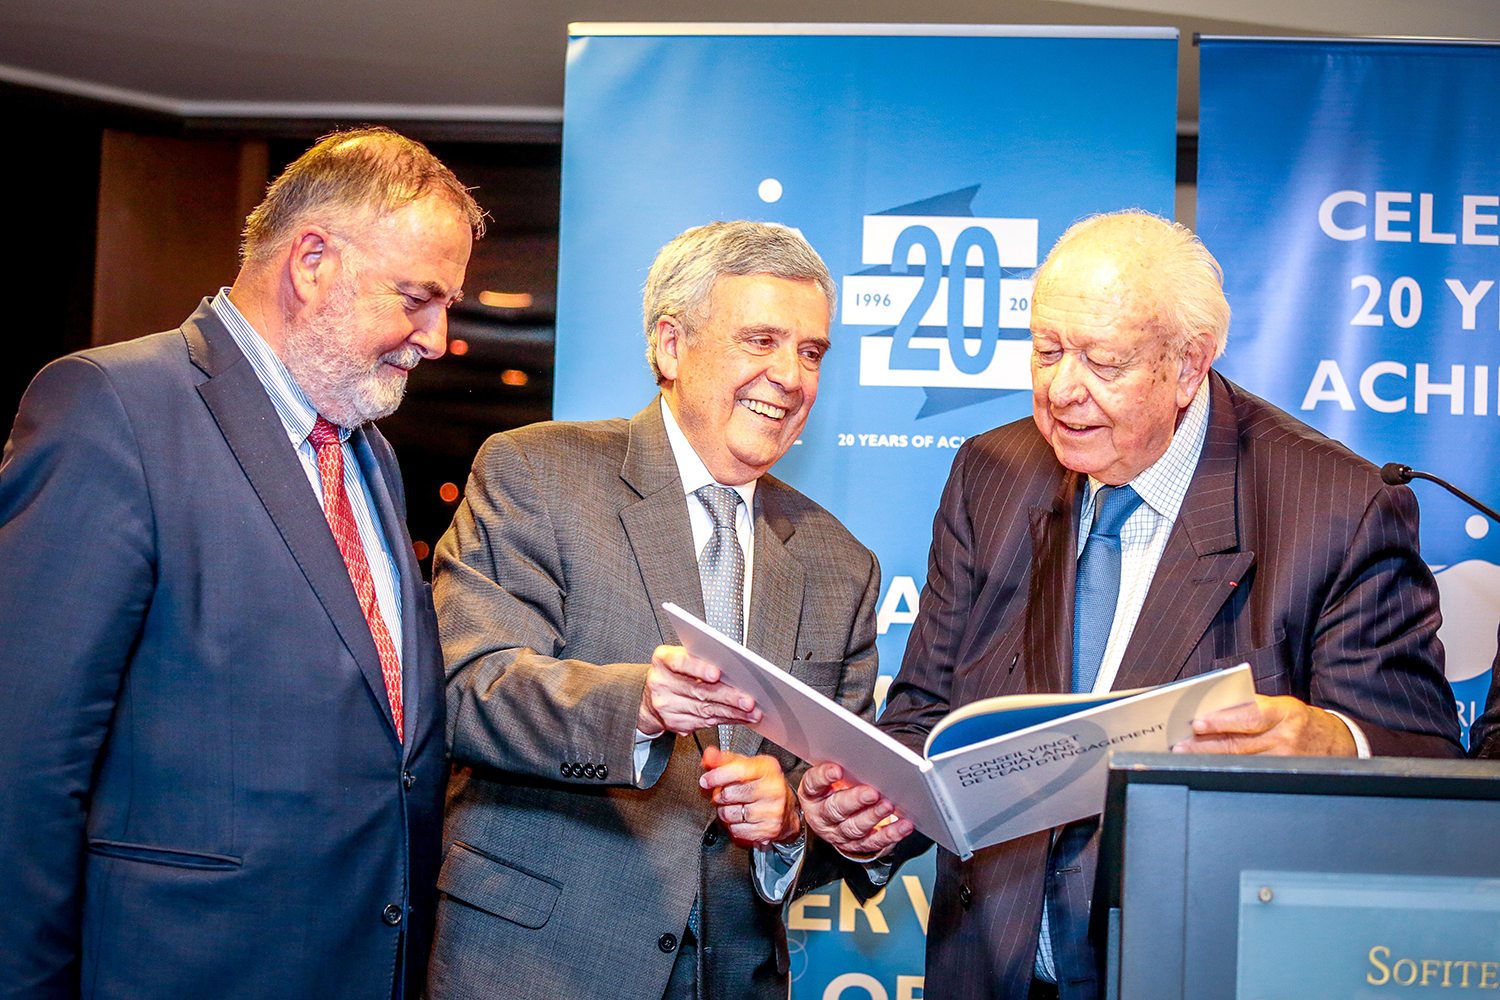 World Water Council President Benedito Braga (center), Mayor of Marseille Jean-Claude Gaudin (right) and World Water Council Honorary President Loïc Fauchon during the evening reception to celebrate the 20th anniversary of the World Water Council, 25 November 2016, Marseille, France